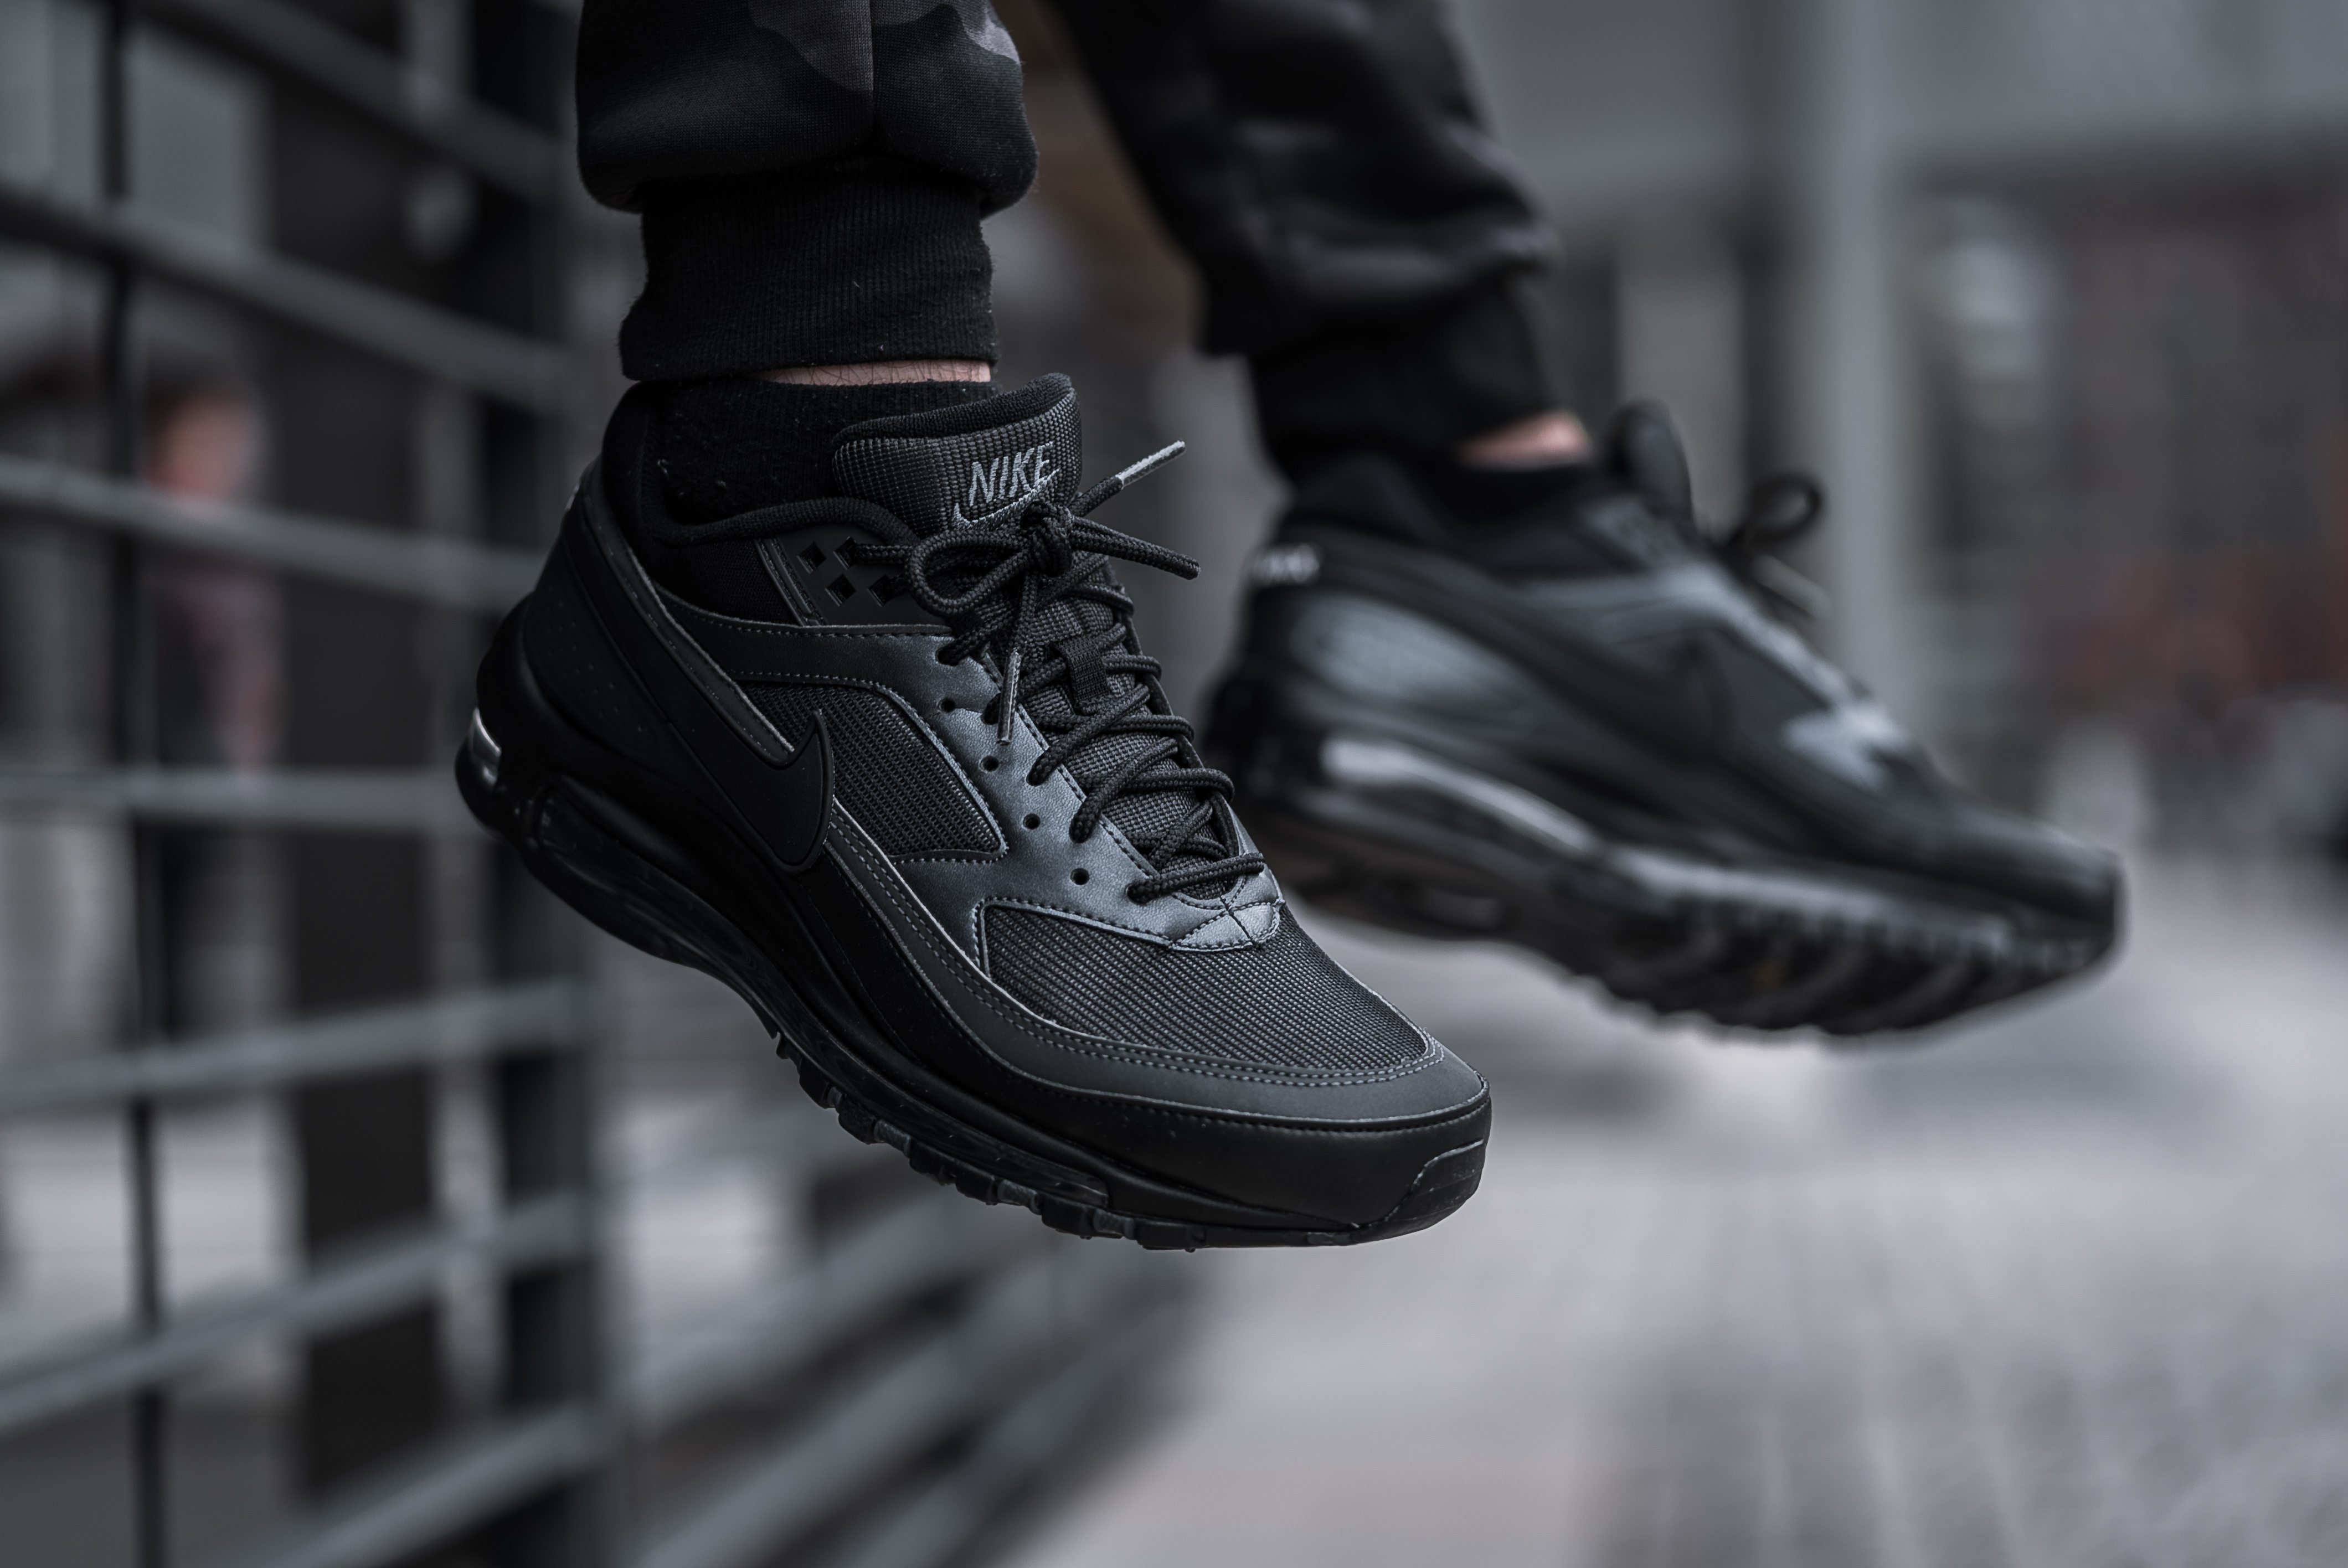 Take An On Foot Look At The Nike Air Max 97/BW Triple Black